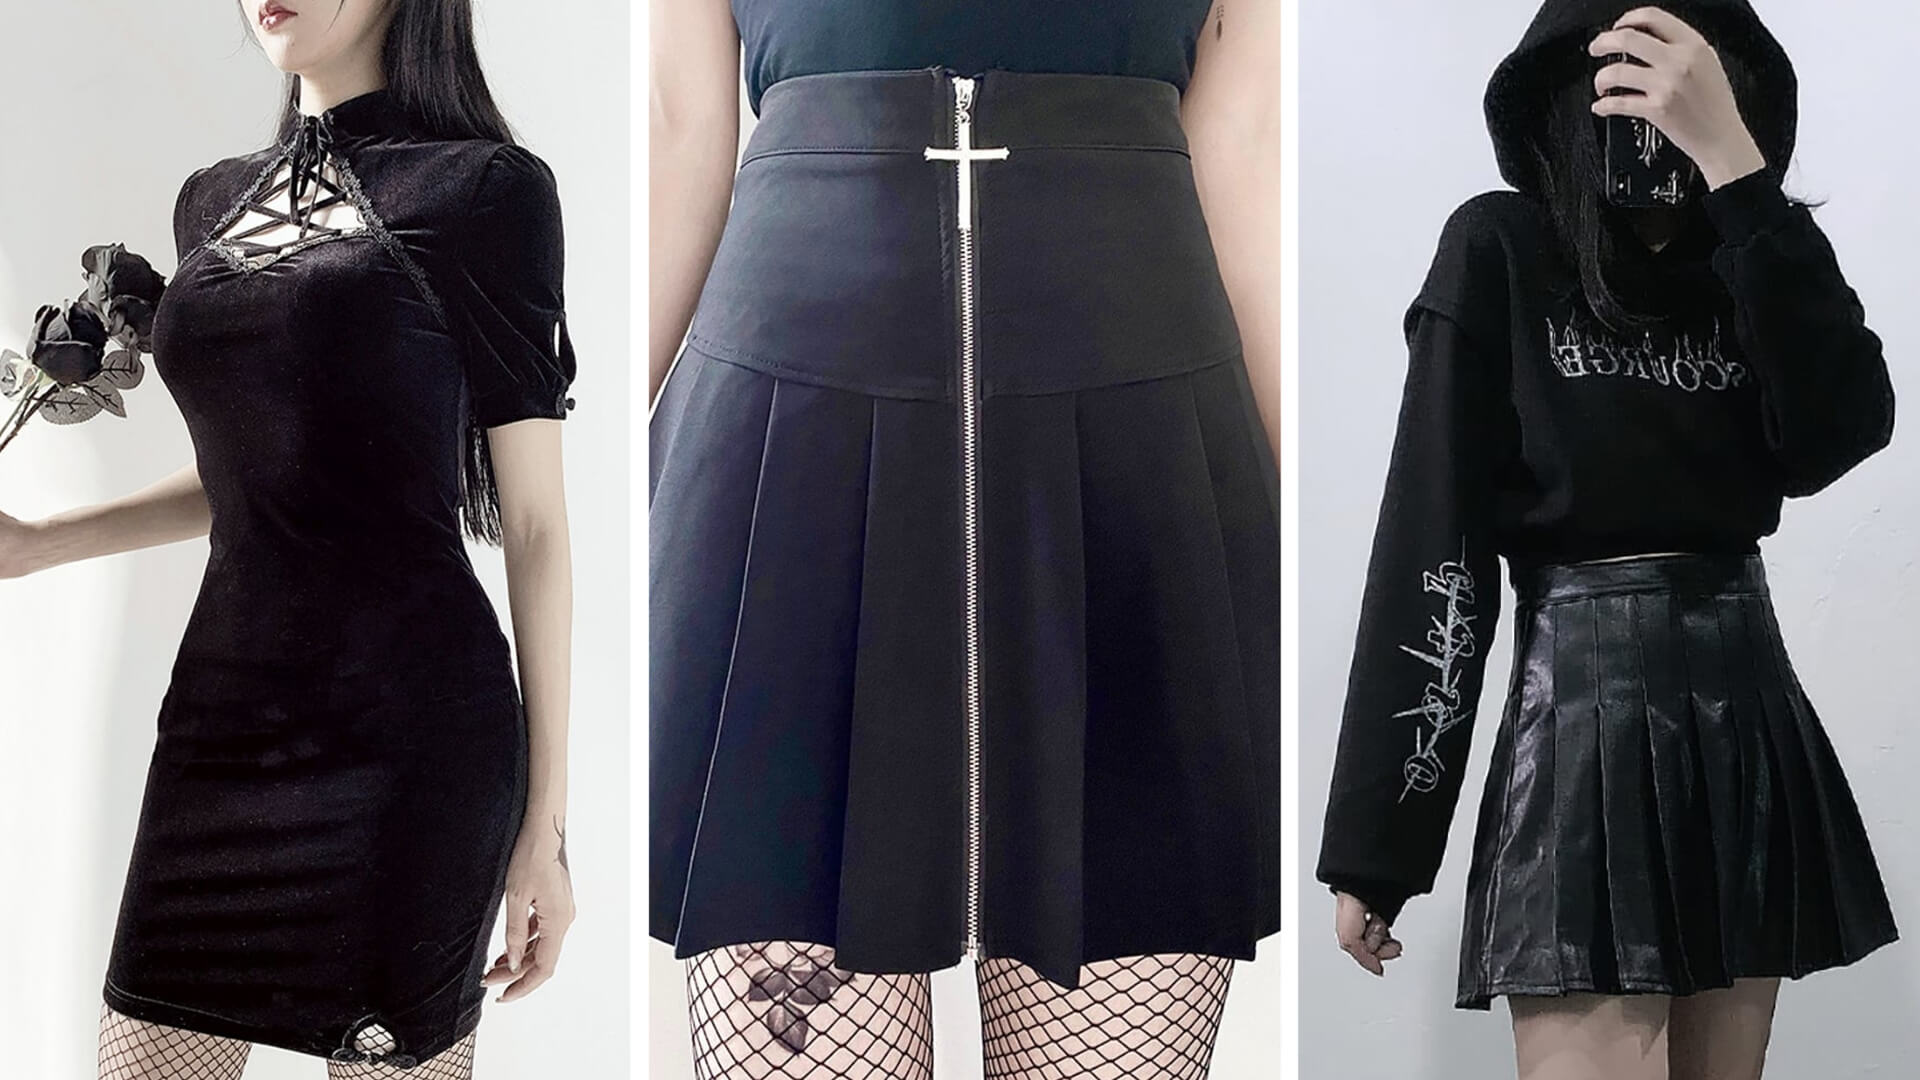 Witch Aesthetic Clothes - Witchcore - Outfits Types - Orezoria Blog